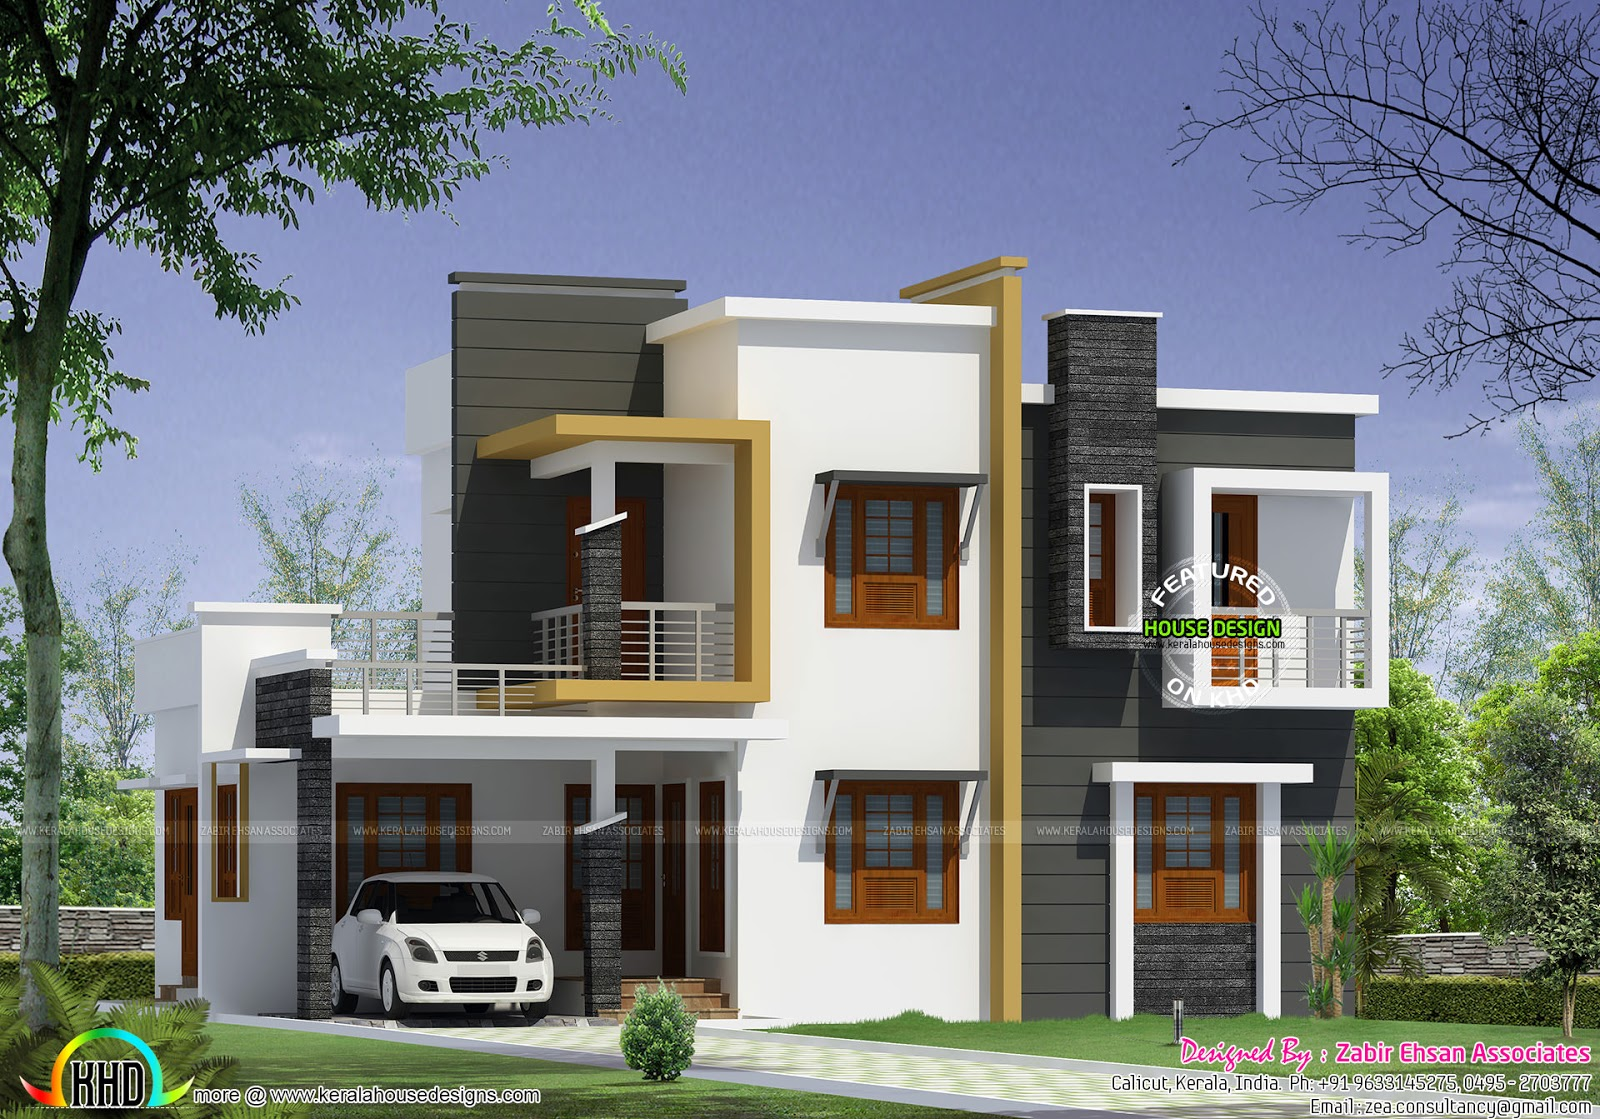 Box type modern house plan kerala home design and floor for House eplans